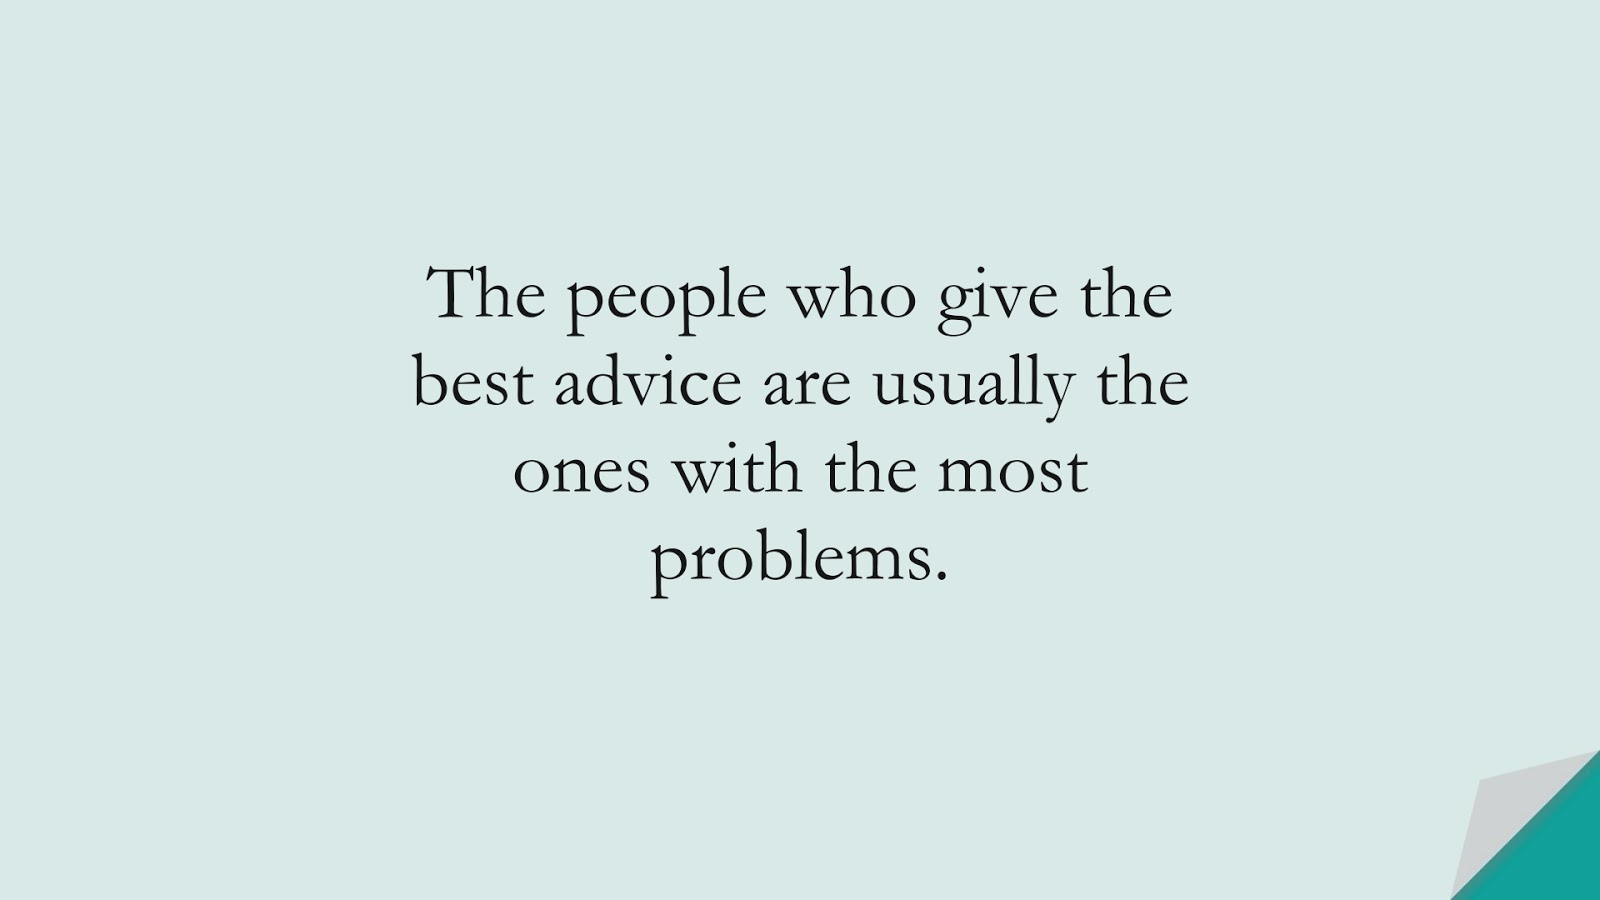 The people who give the best advice are usually the ones with the most problems.FALSE